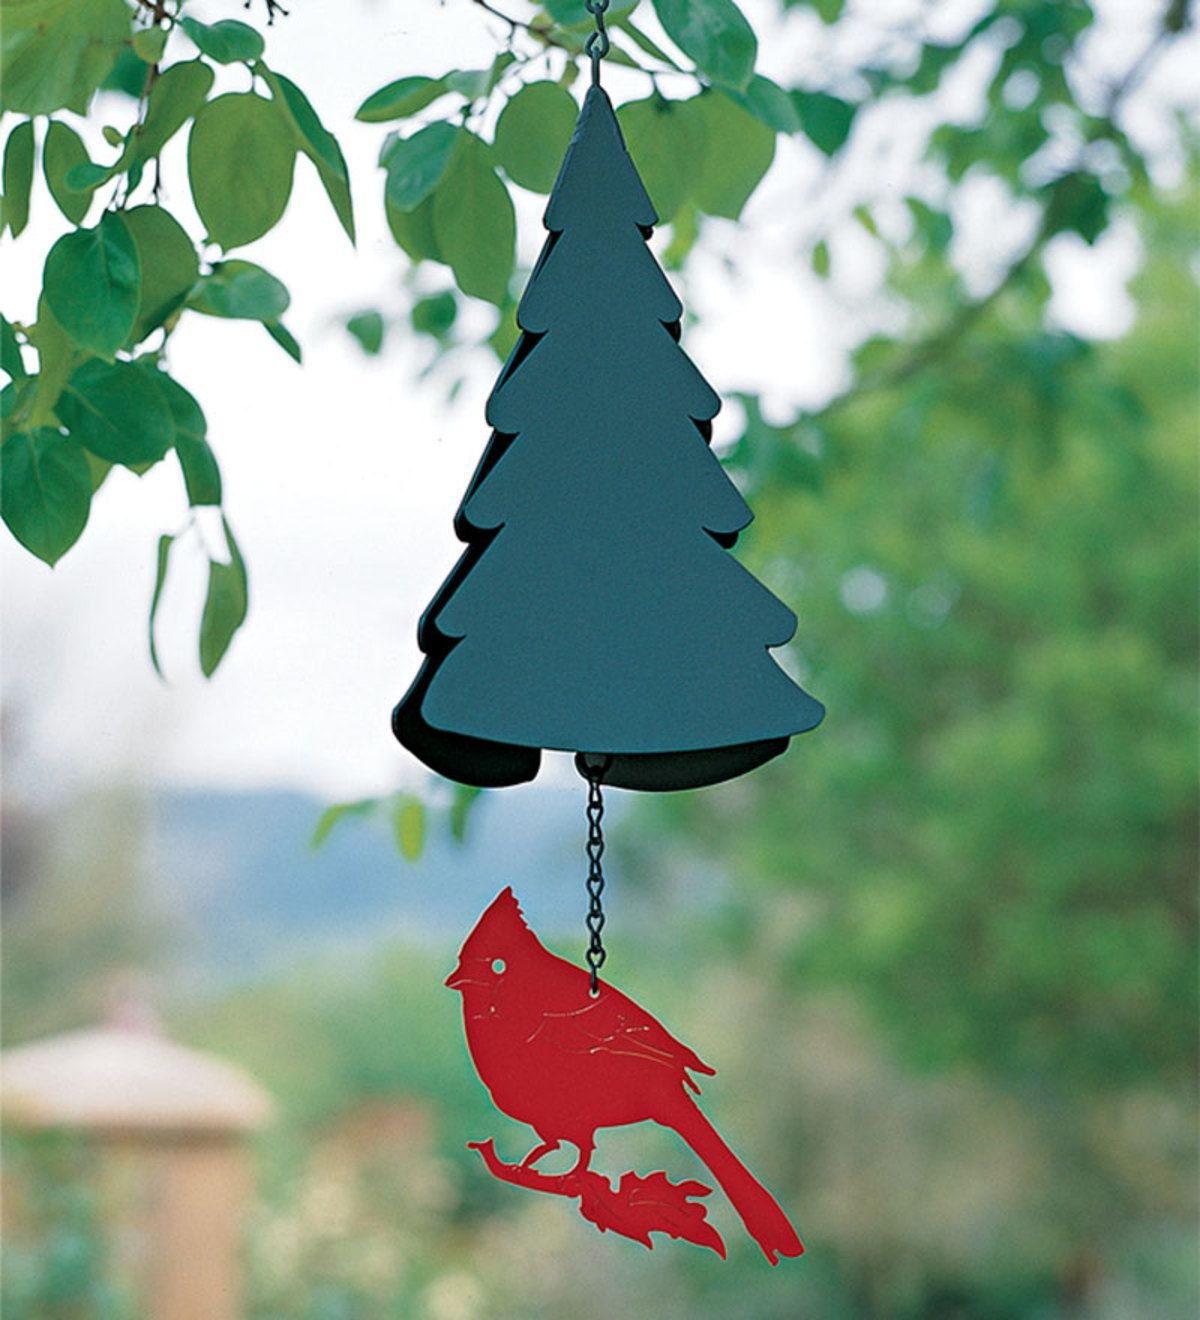 This wind bell is a piece of contemporary American Folk